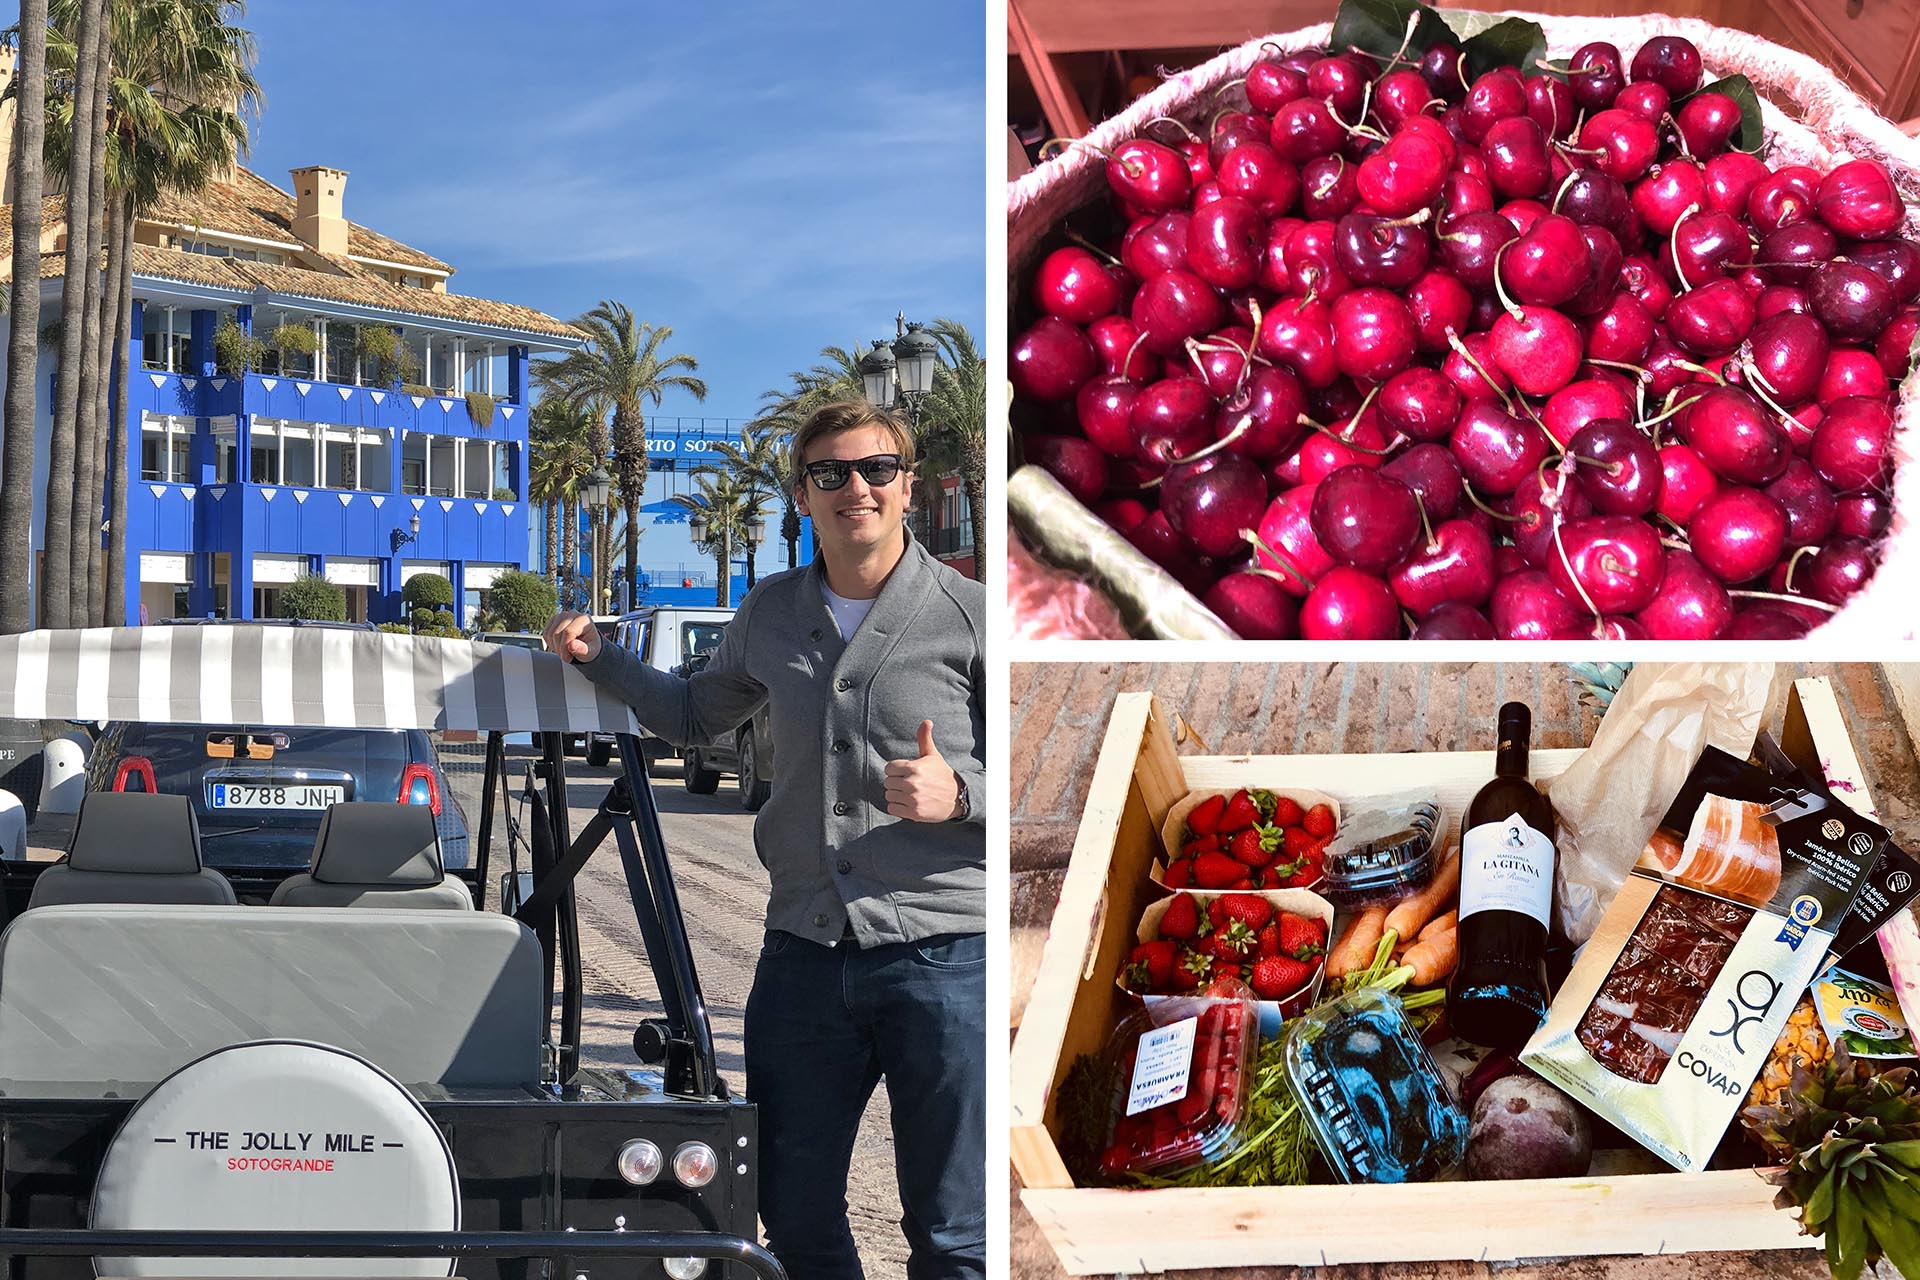 tom-the-jolly-home-fresh-fruits-delivered-to-your-home-noll-sotogrande